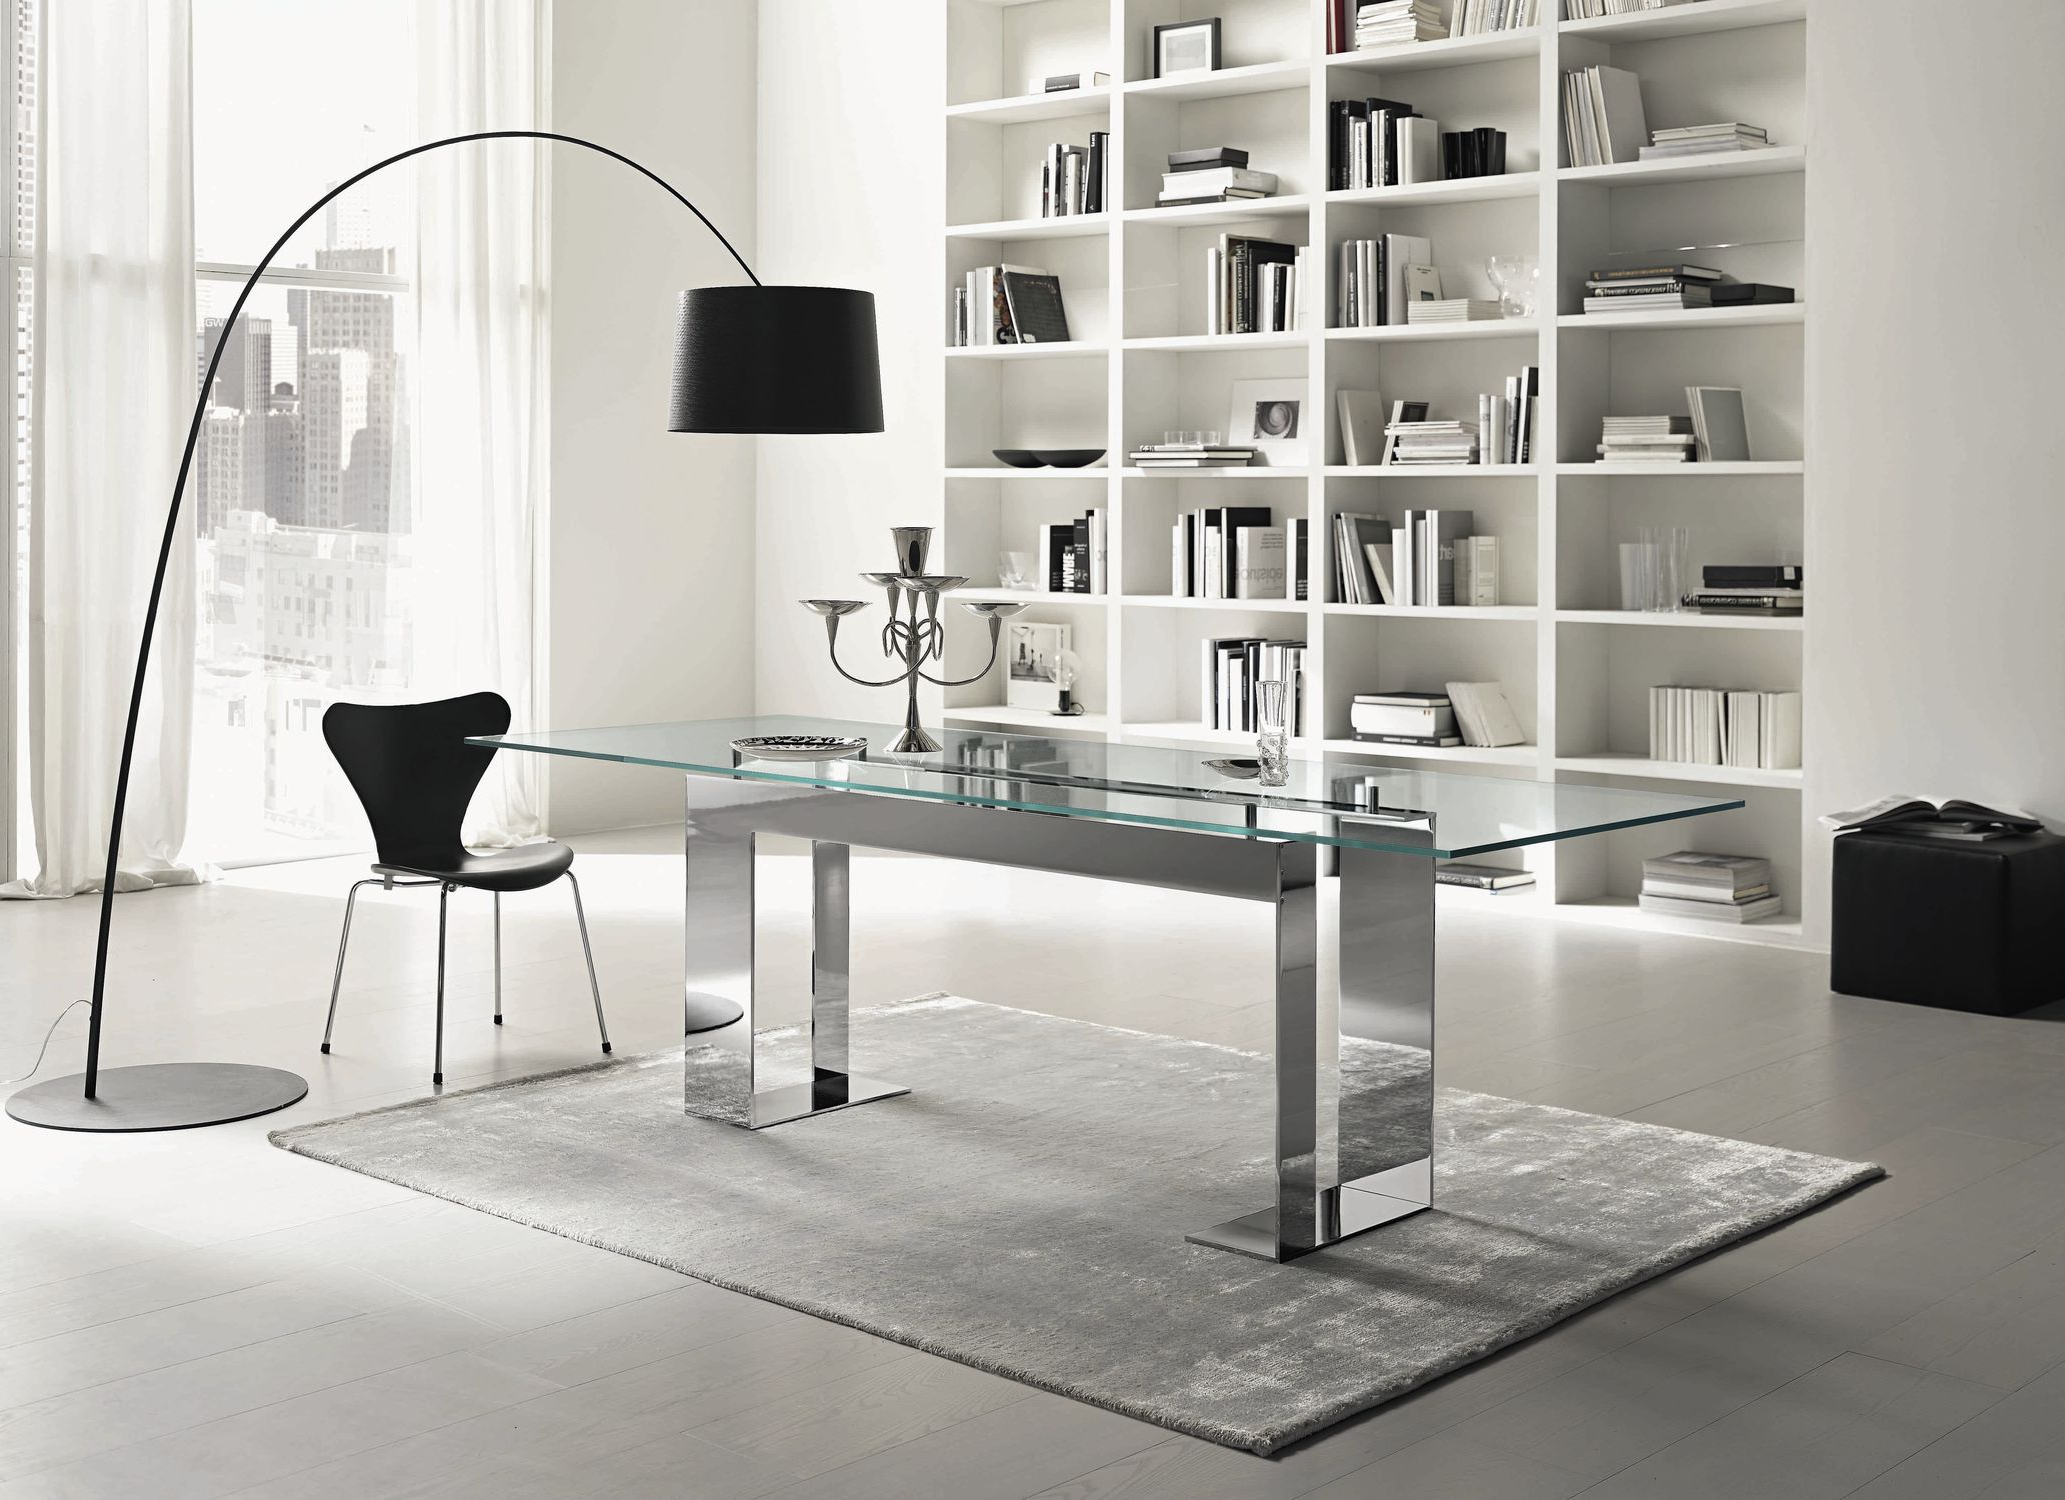 Contemporary Table / Chromed Metal / Chromed Metal Base With Most Up To Date Long Dining Tables With Polished Black Stainless Steel Base (View 6 of 25)